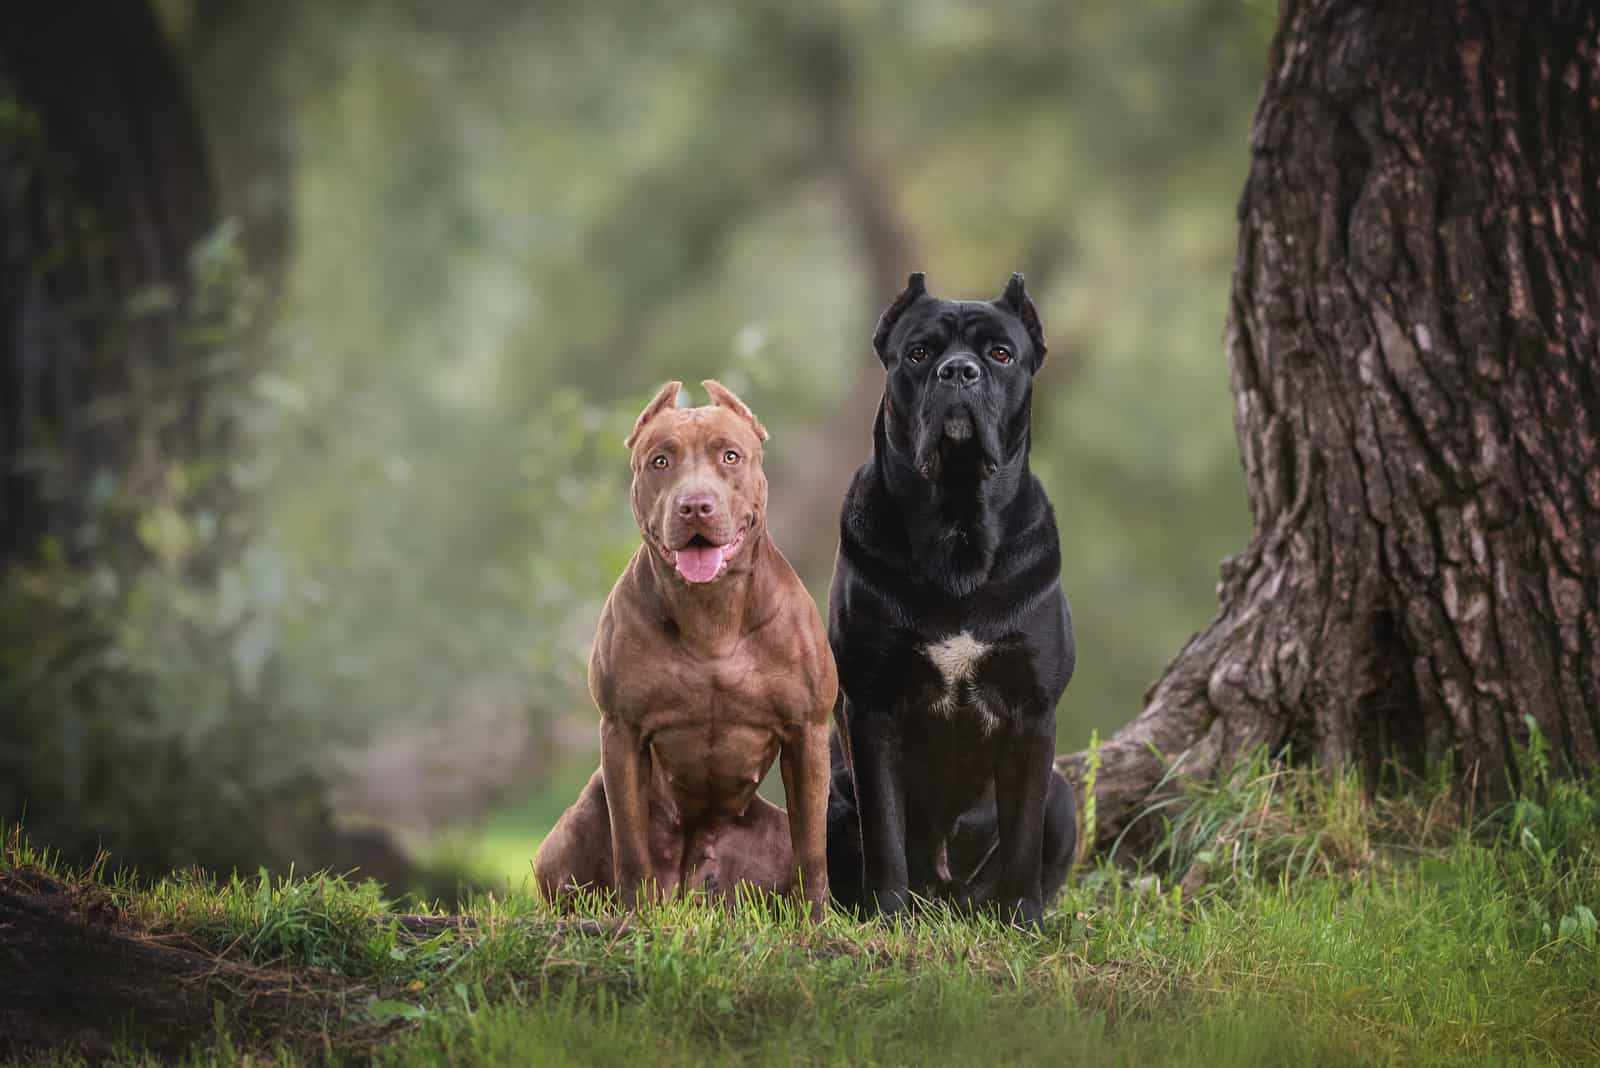 American Pit Bull Terrier and Cane Corso sitting on green grass